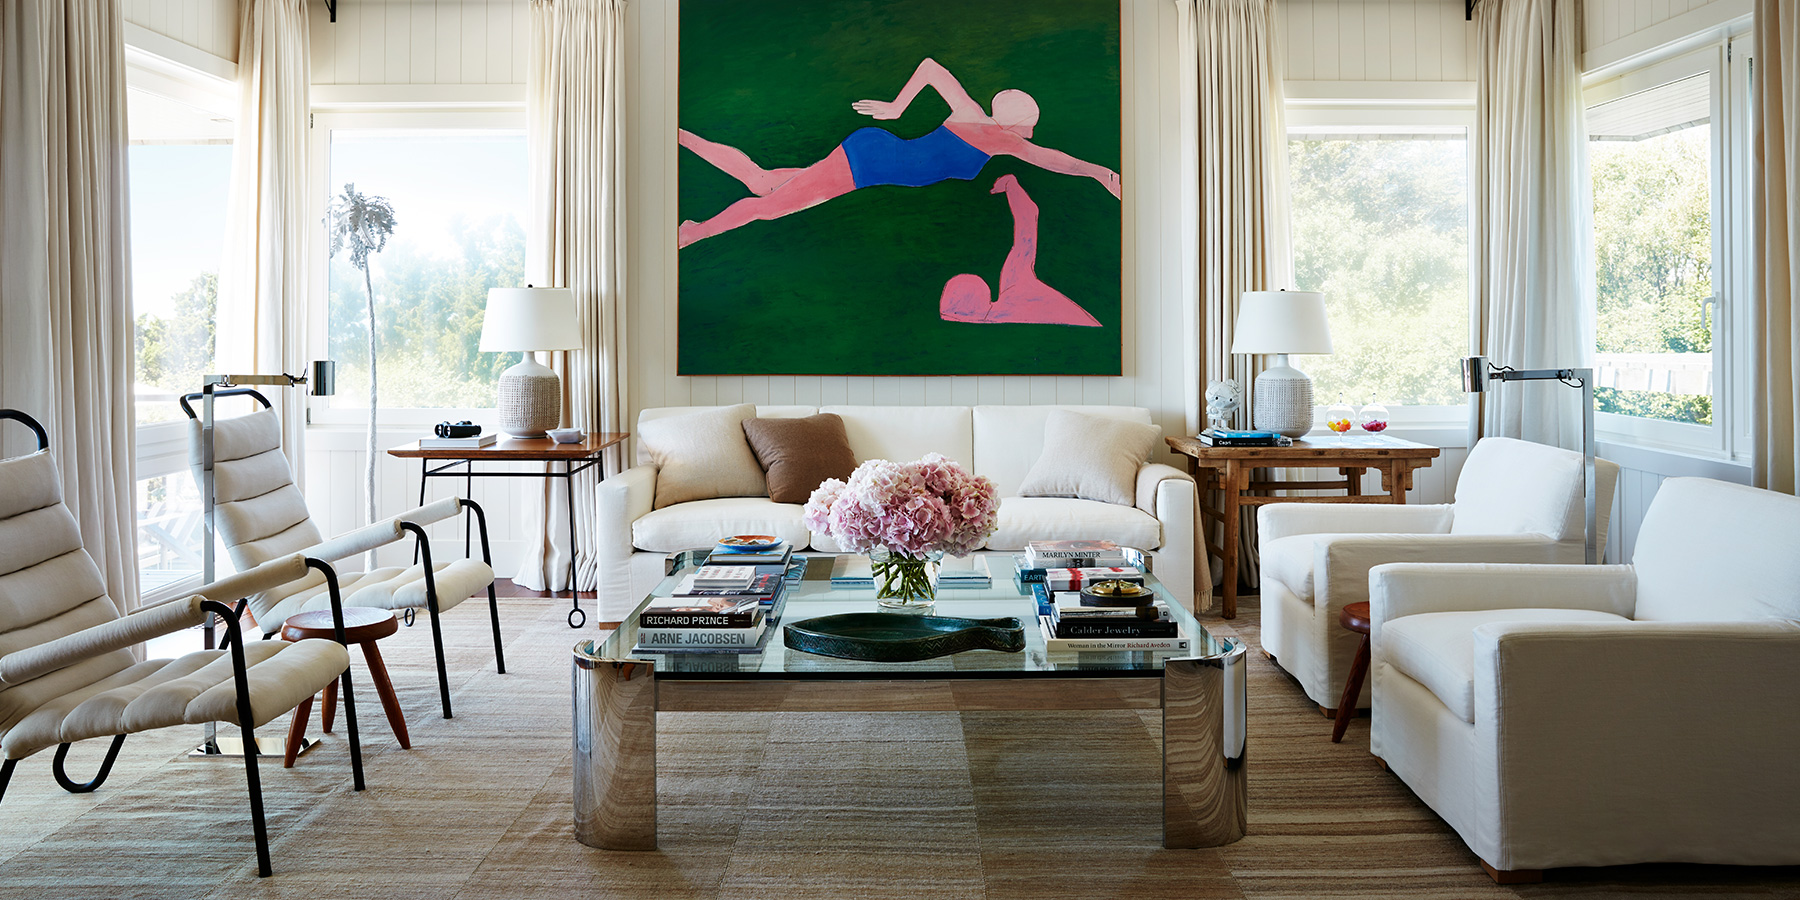 Robert Stilin's Interiors Are Infused with a Laid-Back